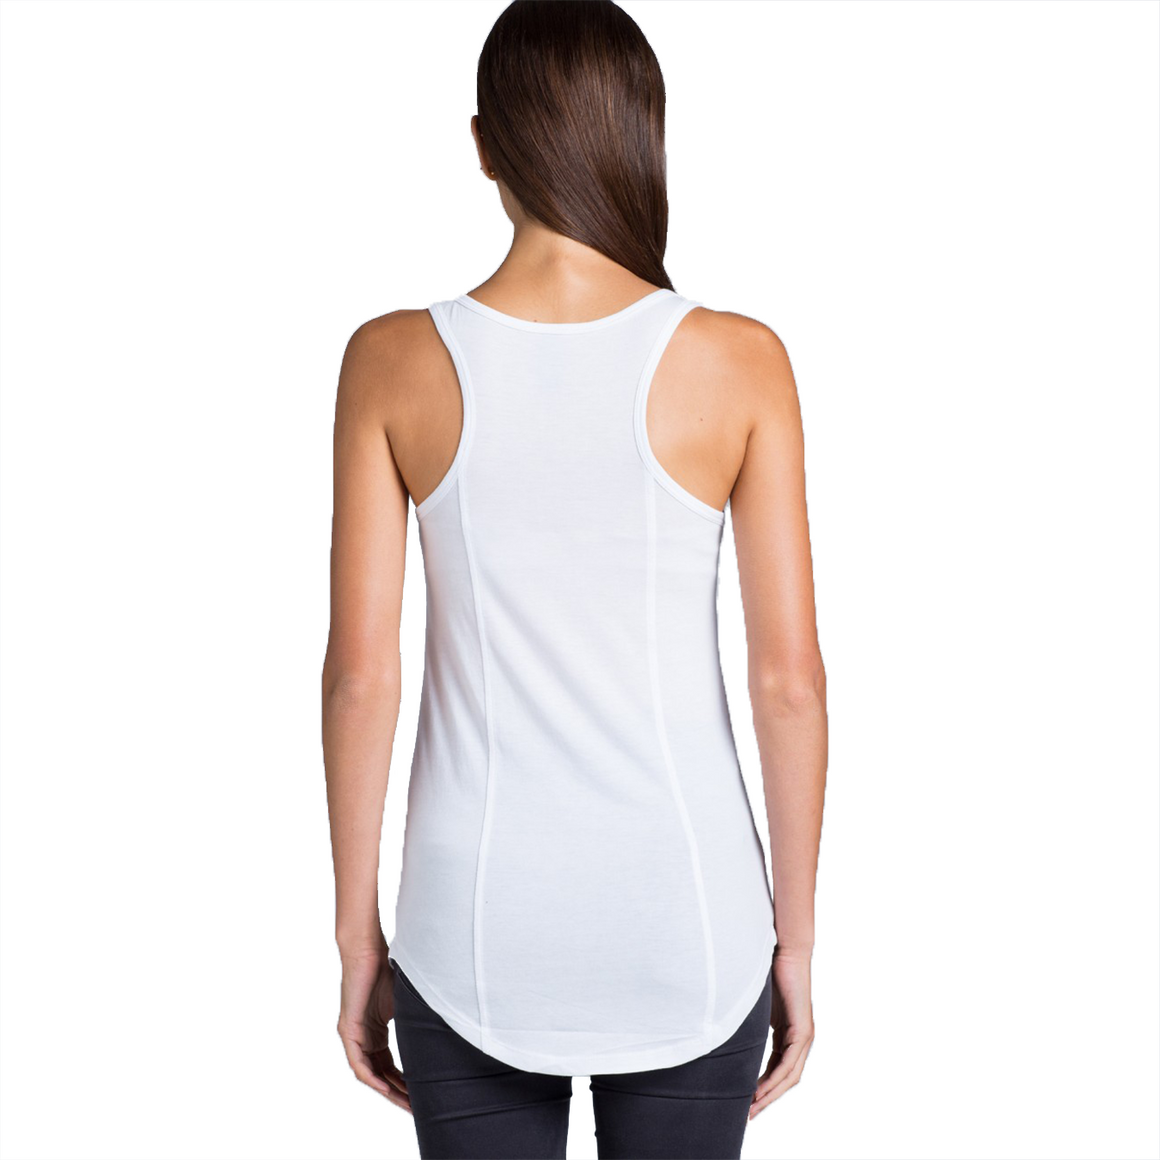 Fifty5 Clothing Warrior Women's Luxe Panel Detail Racerback Tank Top